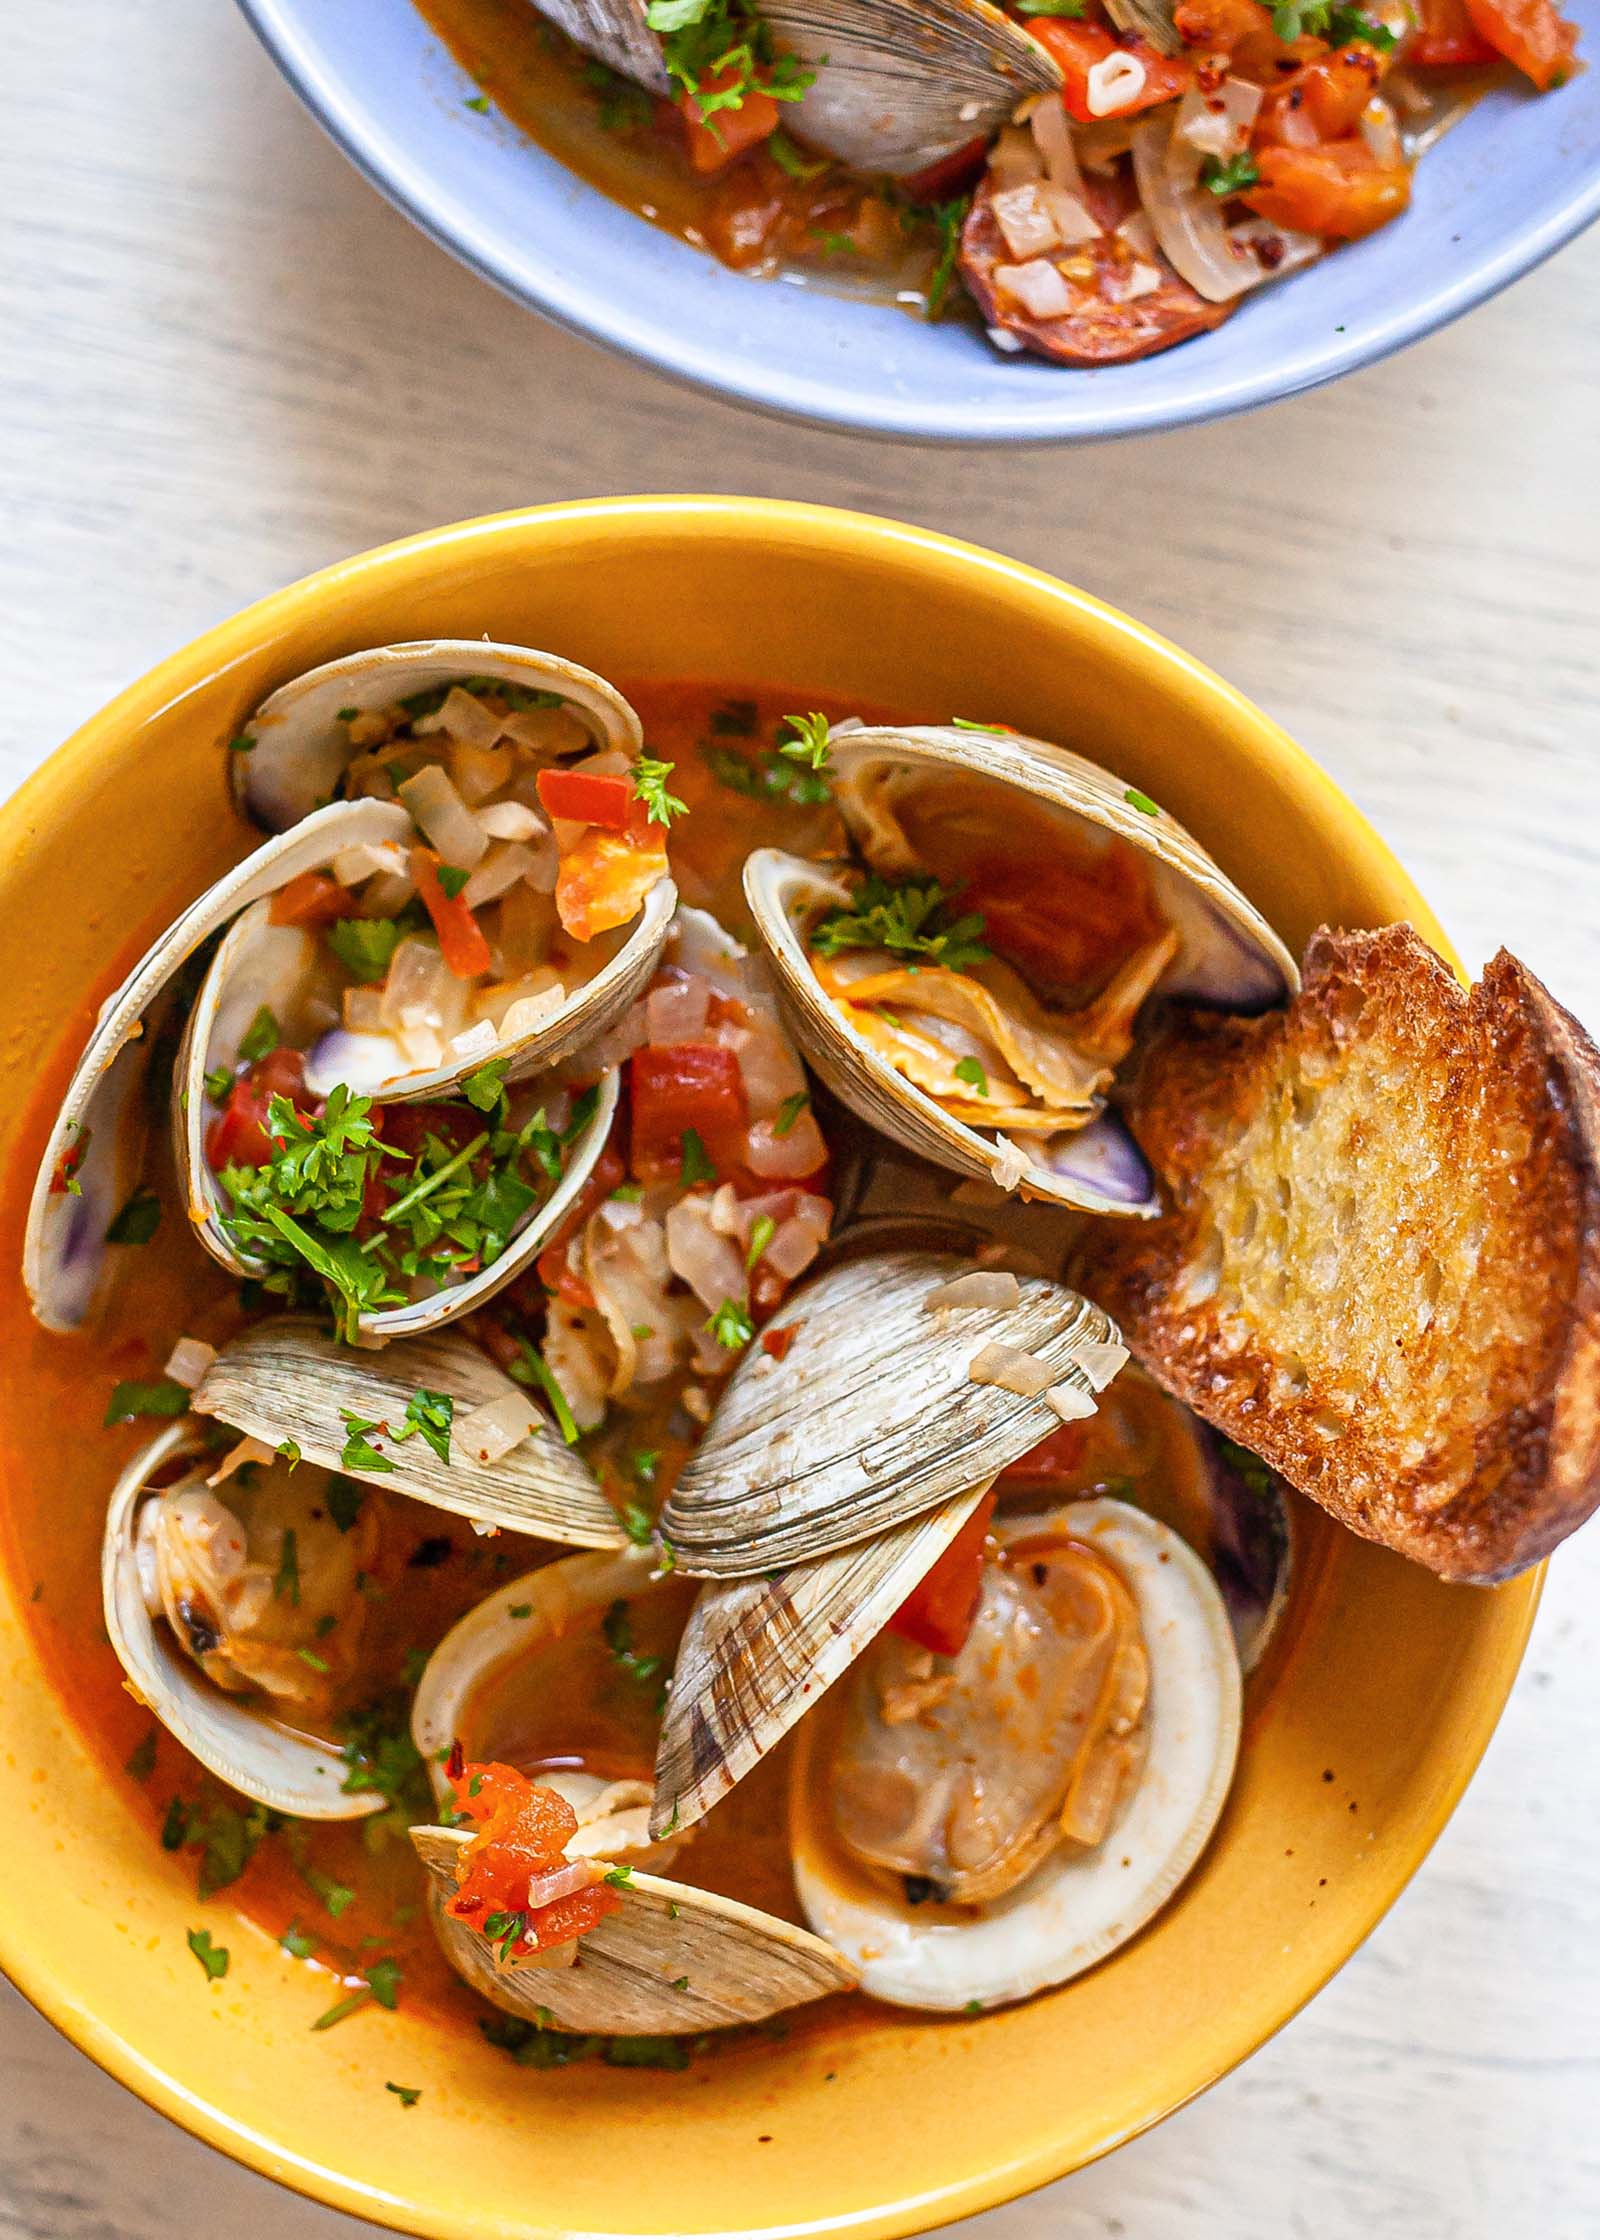 Overhead view of a yellow bowl with steamed clams with chorizo and grilled bread. A second blue bowl is partially visible above.